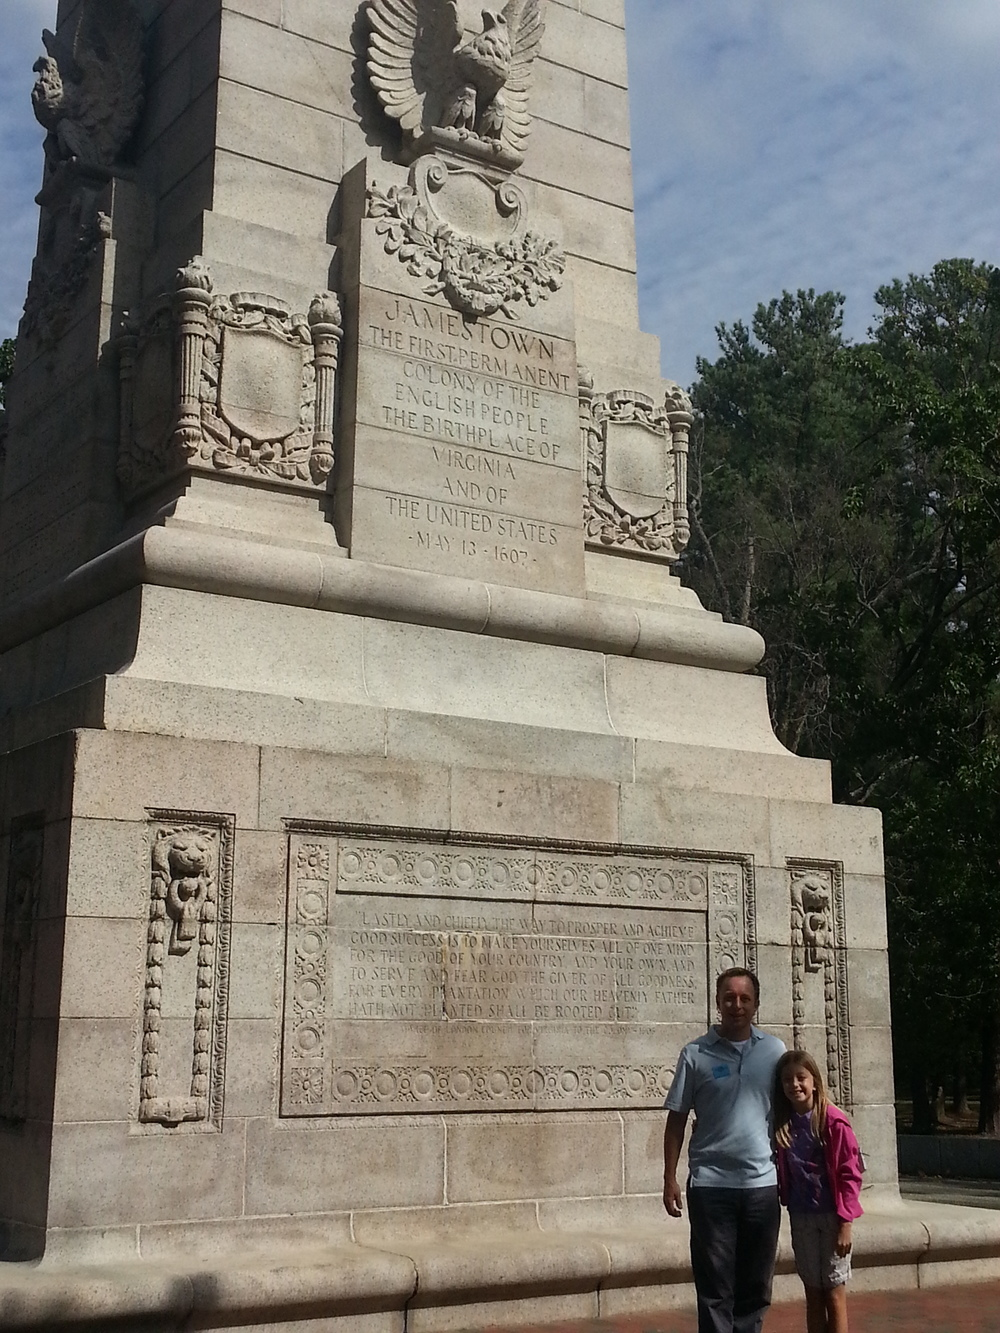 This monument was placed in 1907, on the 300th anniversary of the landing.